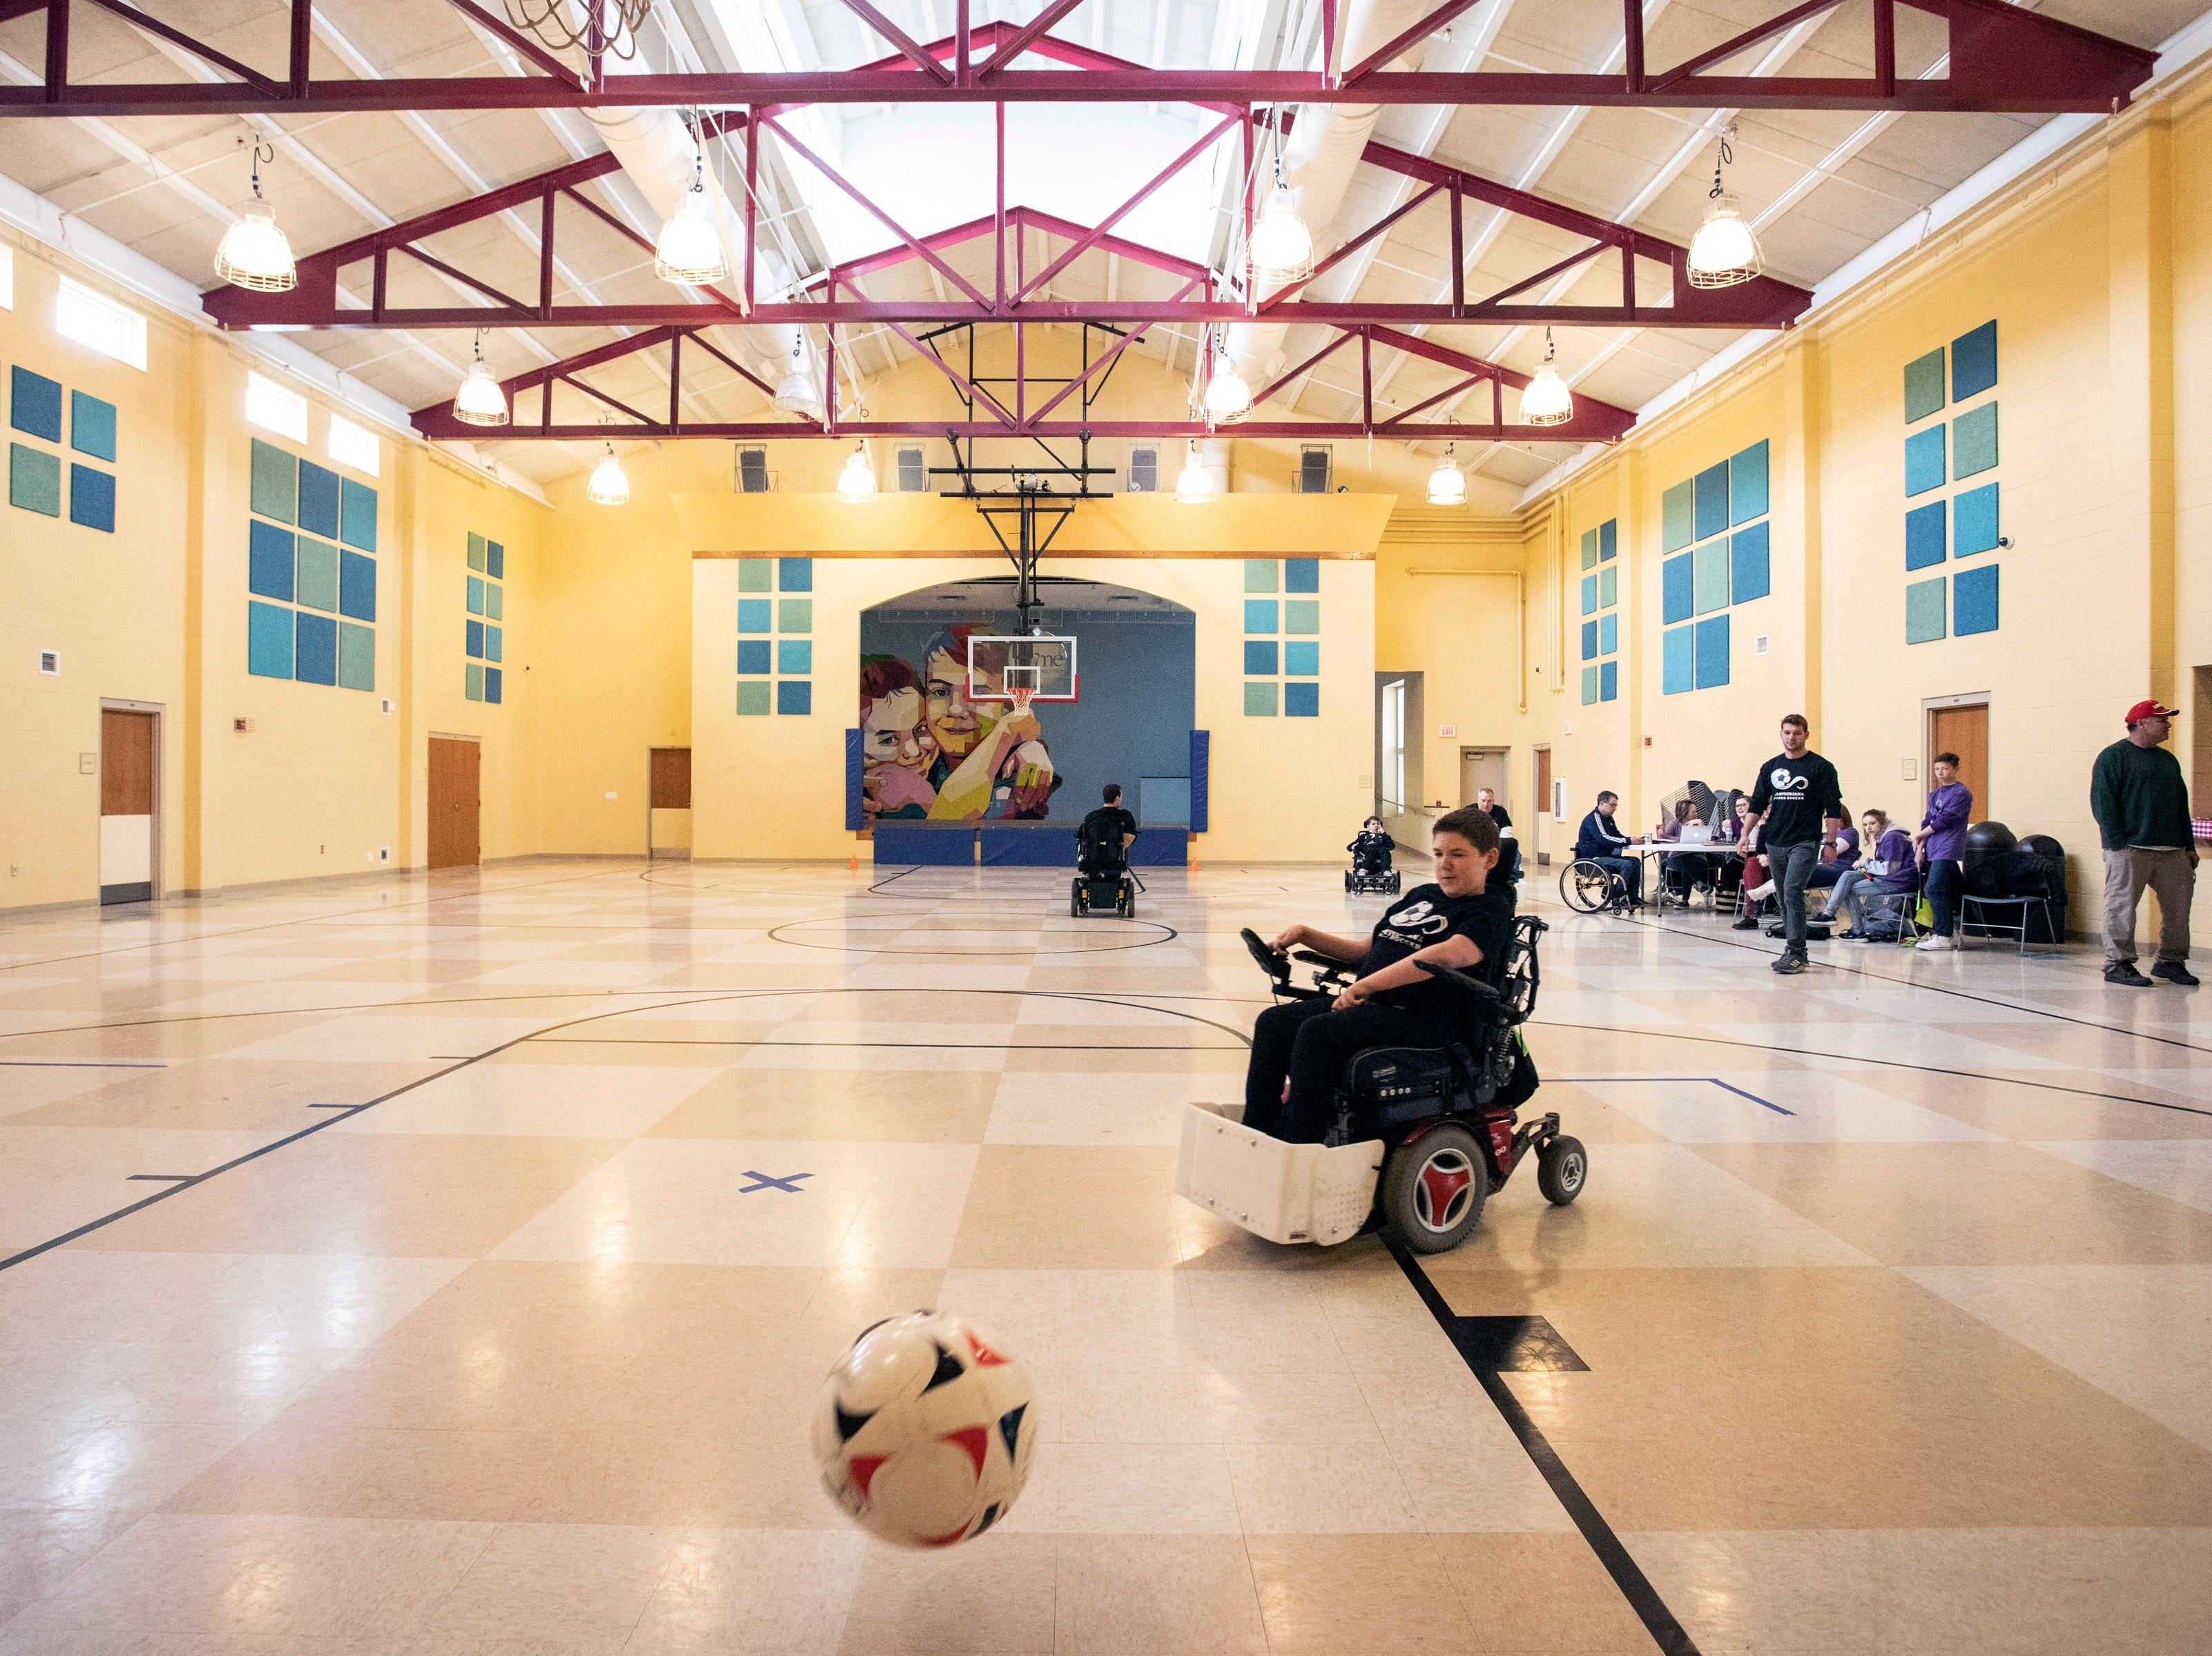 Connor deLuca takes shots at the goal during a Louisville City Power Soccer practice on Saturday afternoon. April 20, 2019